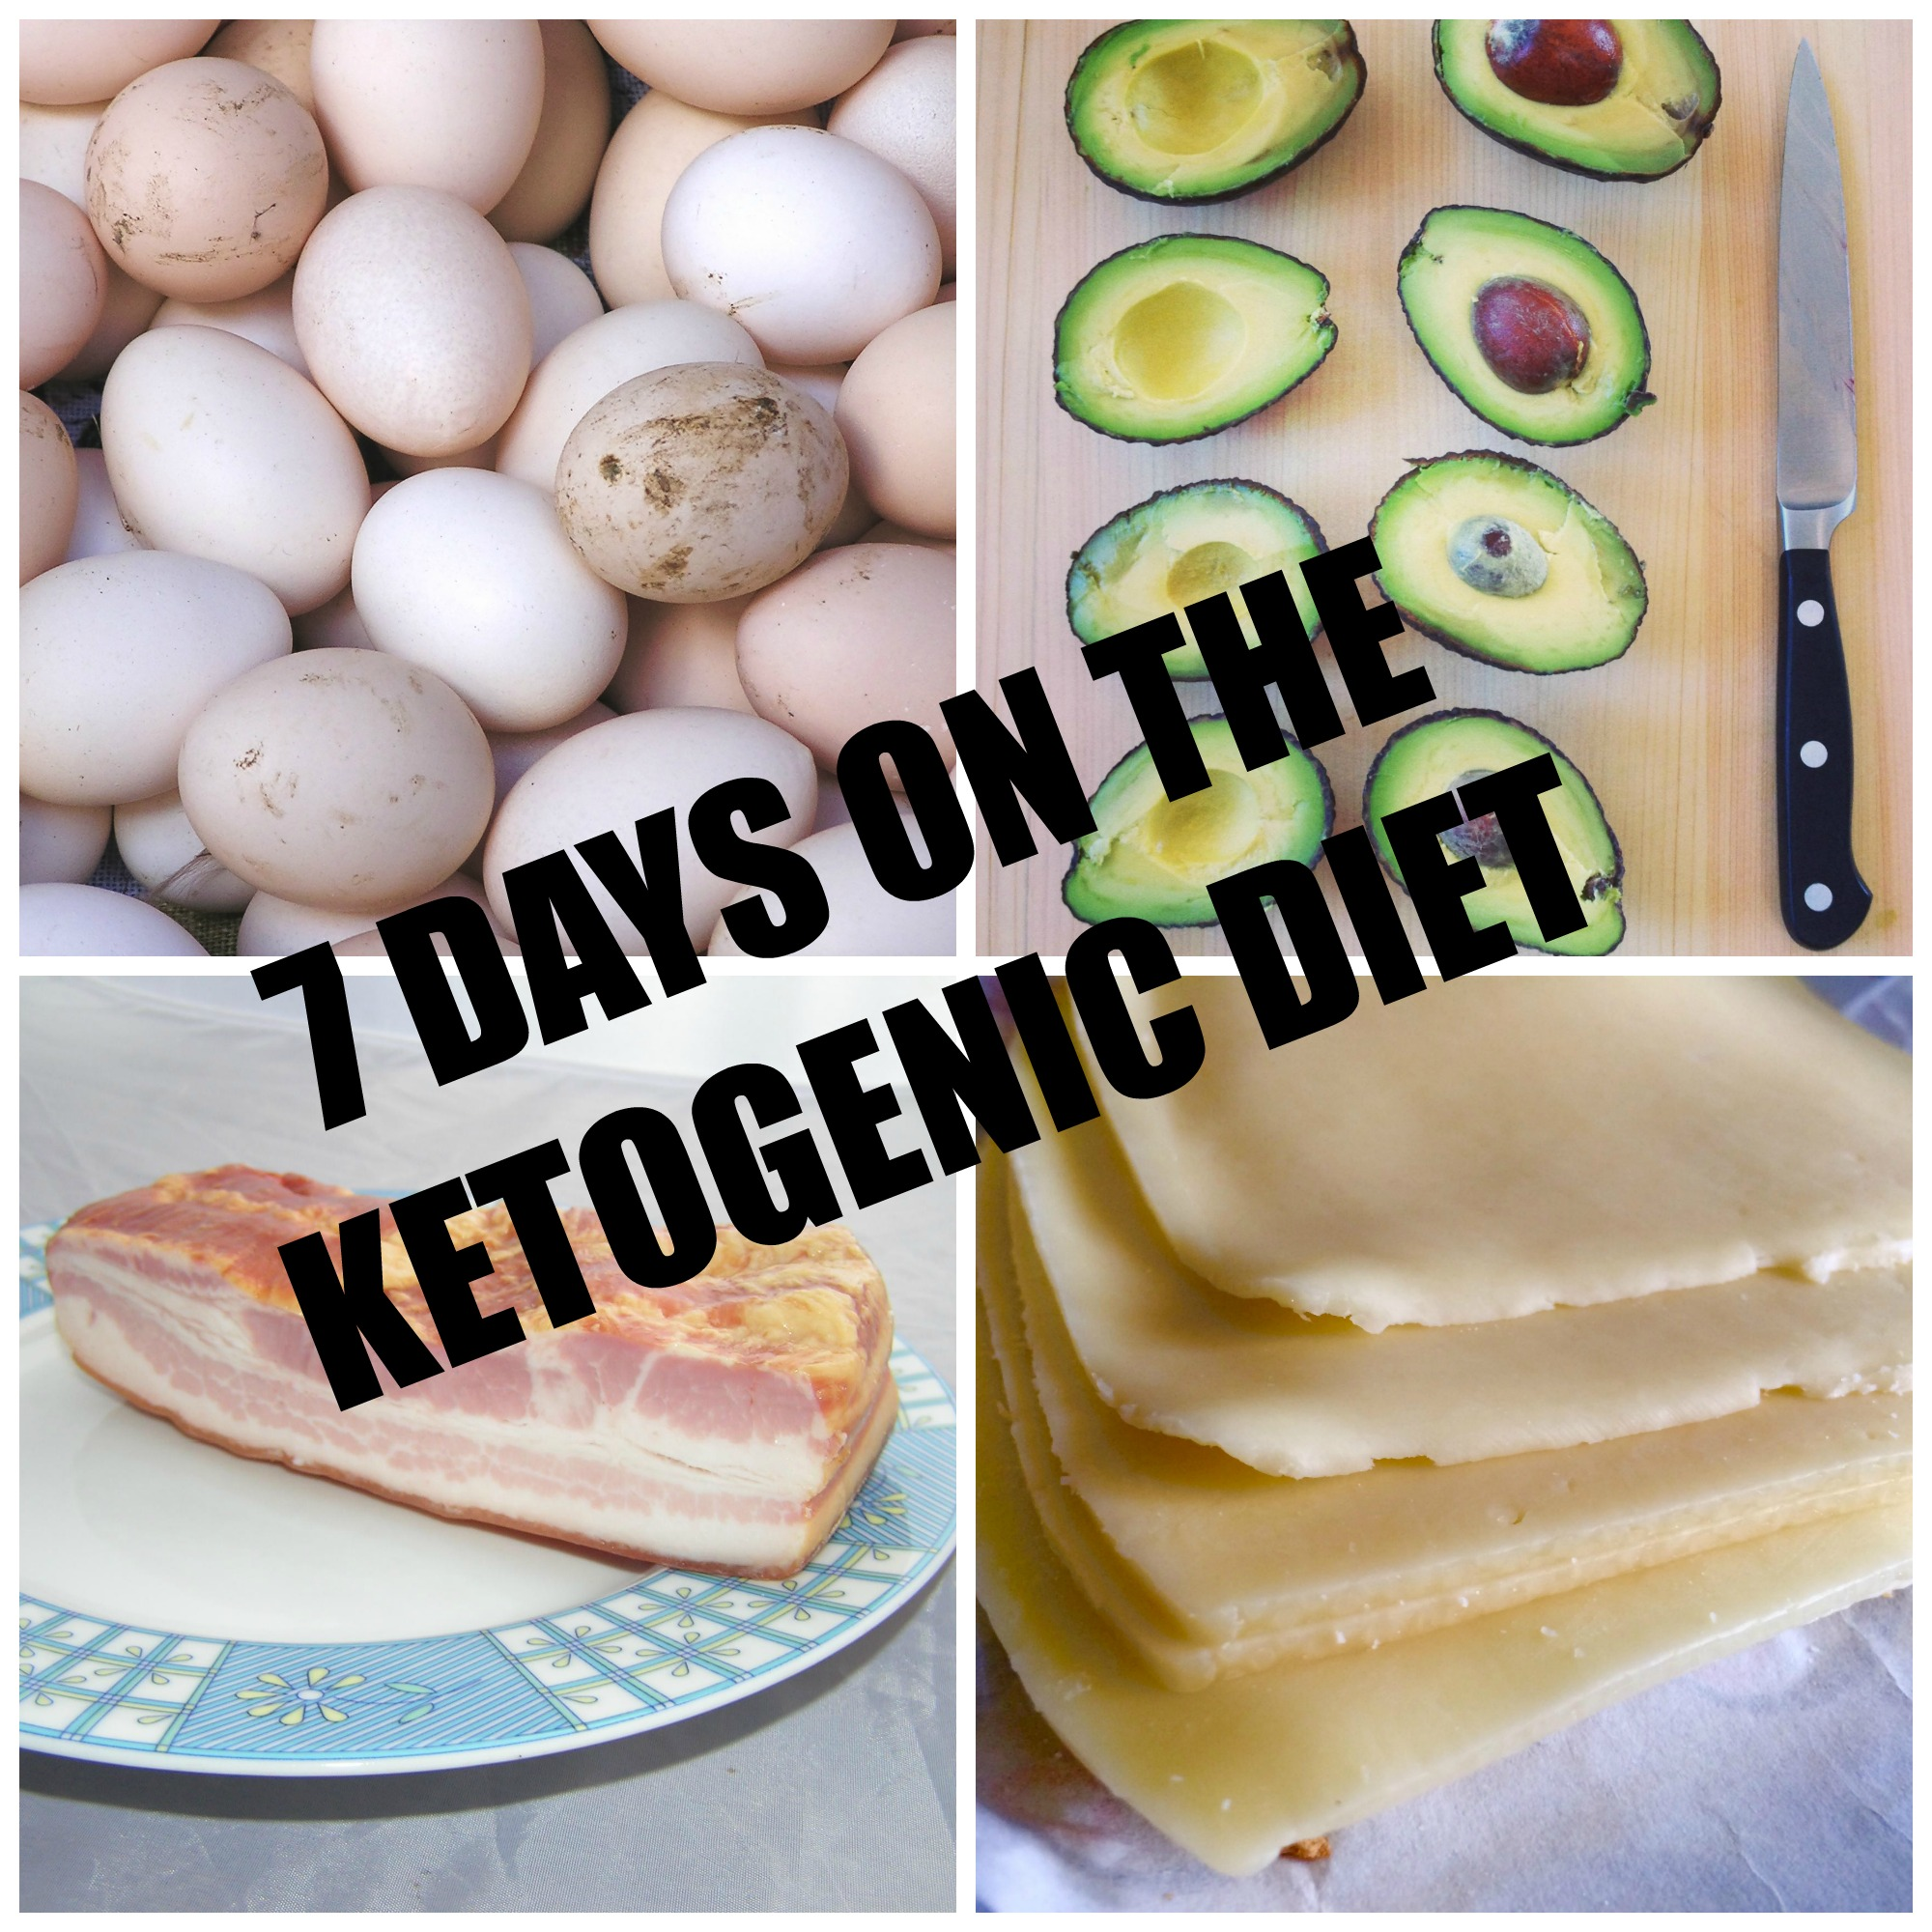 7 Days on the Ketogenic Diet - Orlando Dietitian Nutritionist